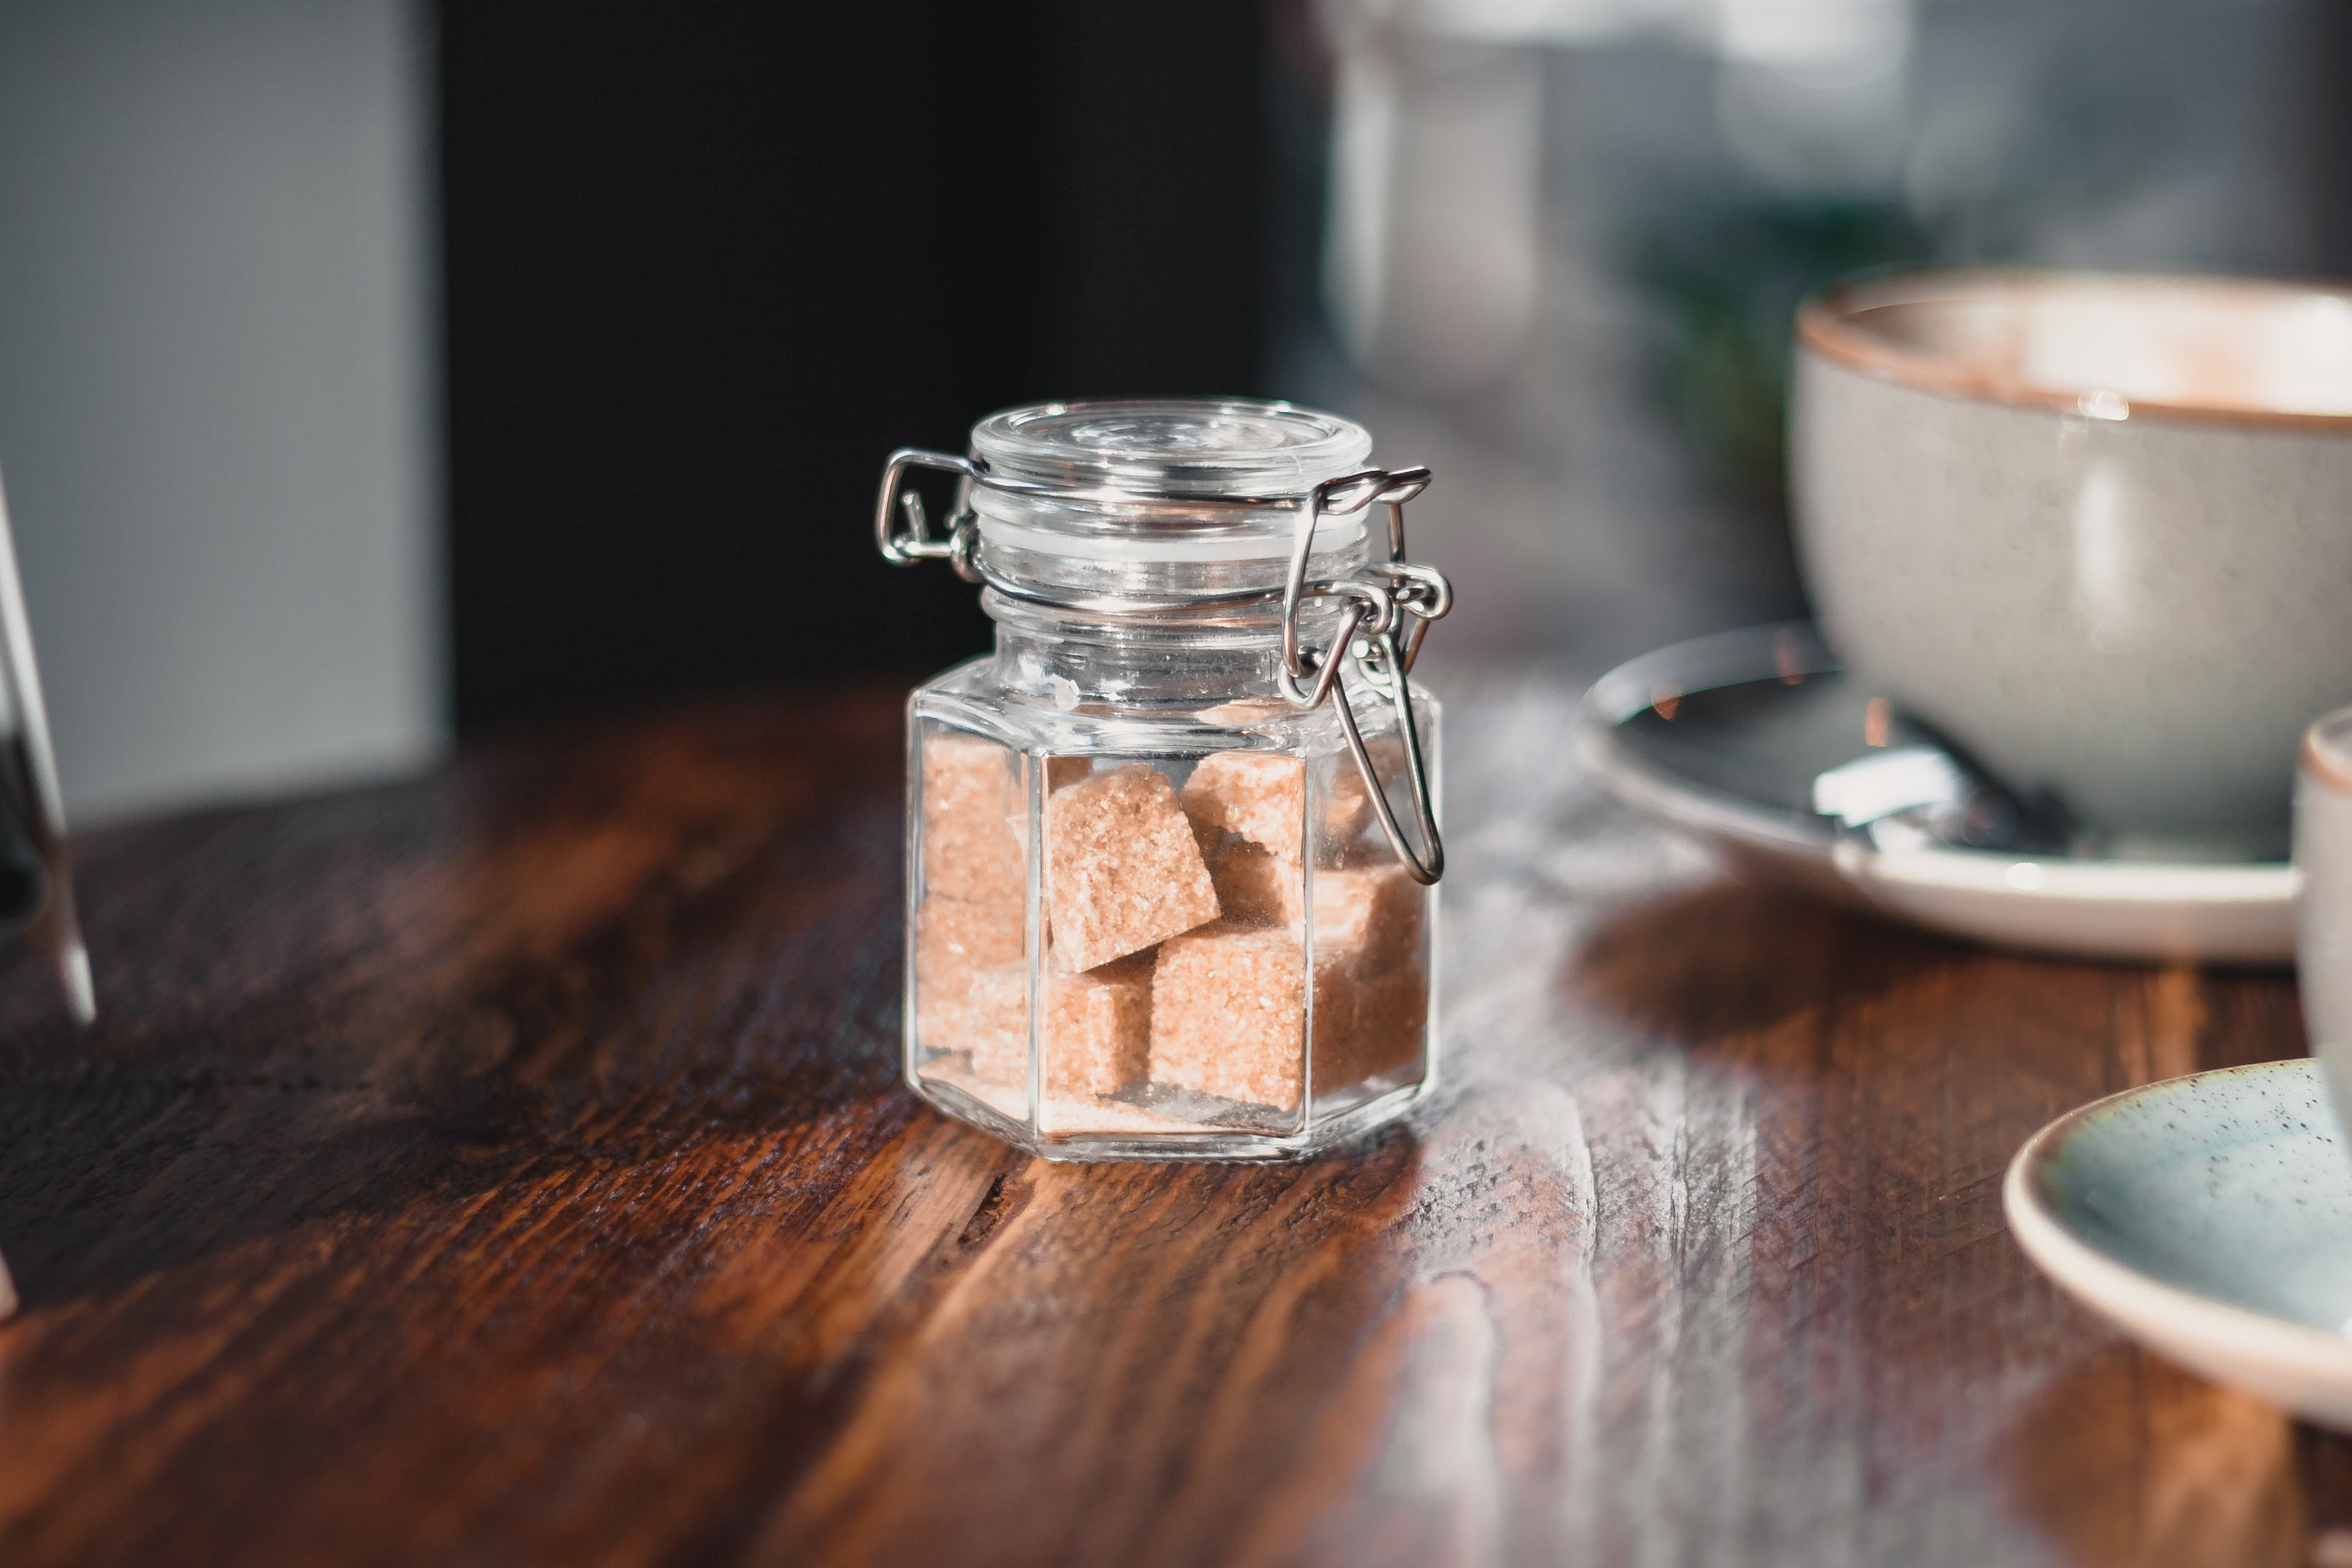 Clear Condiment Shaker With Brown Sugar Cubes Near Gray Teacup